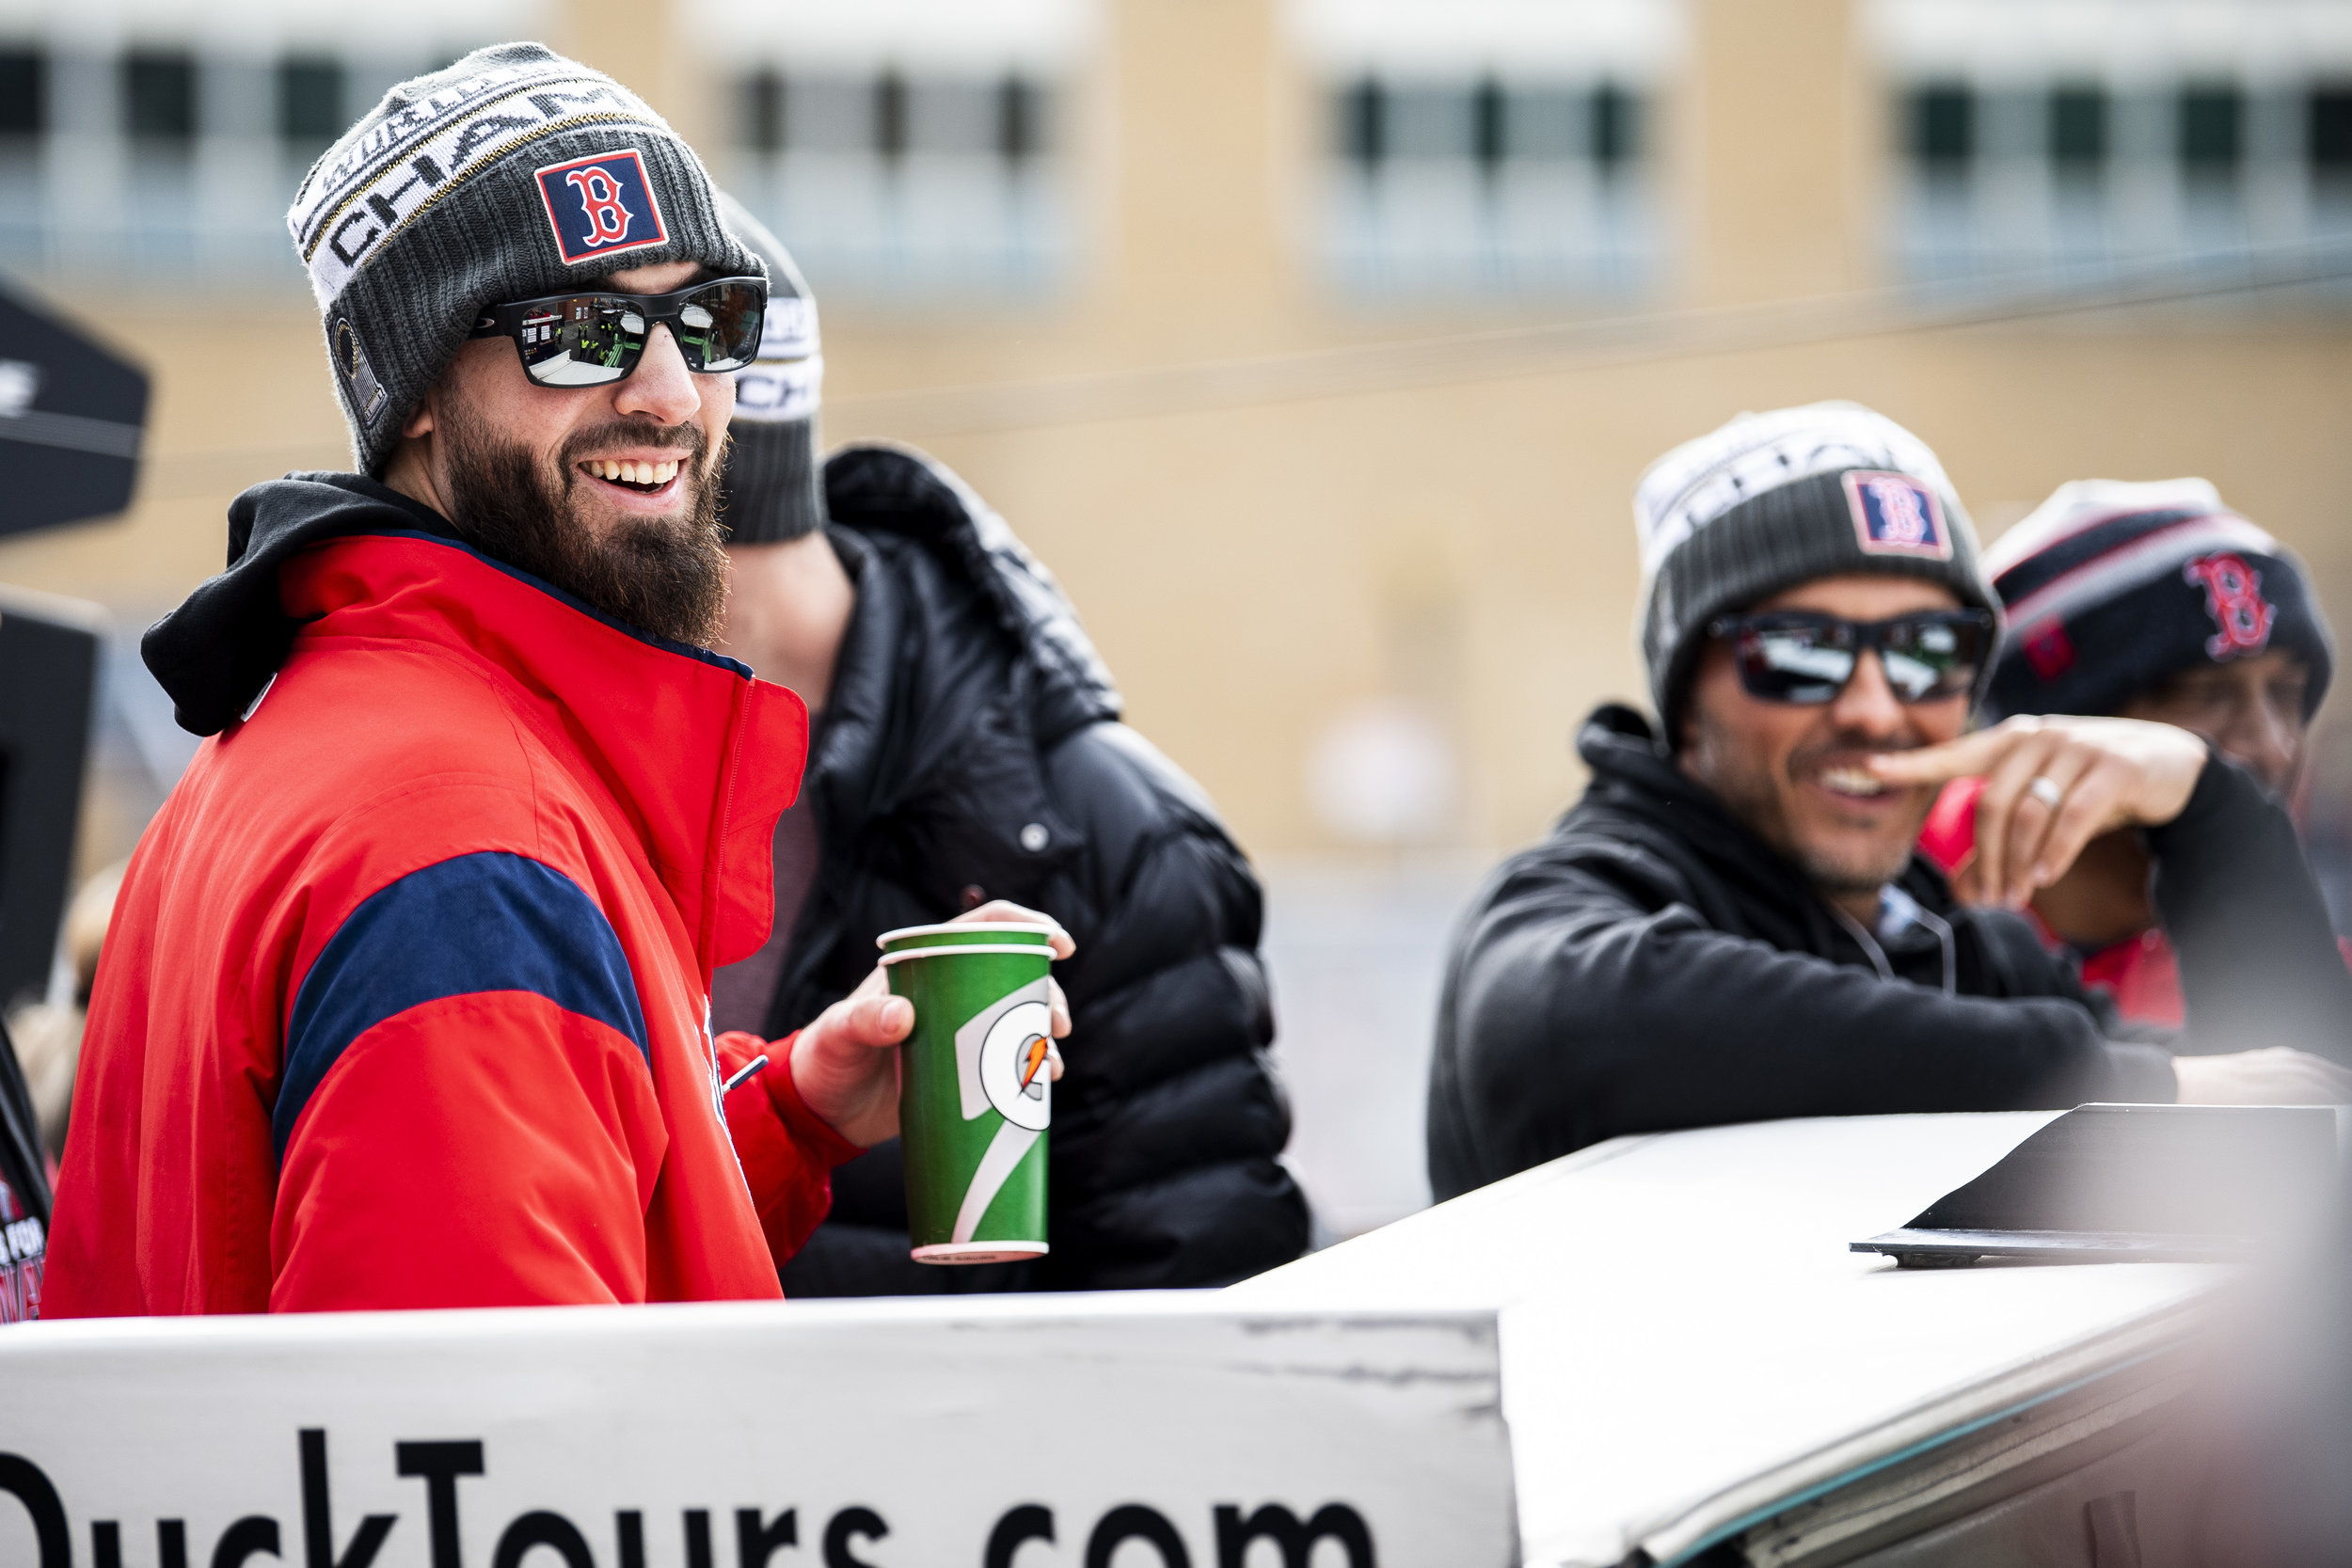 October 31, 2018, Boston, MA: Boston Red Sox pitcher Rick Porcello on the duck boat as the Red Sox Celebrate the World Series Parade in Boston, Massachusetts on Wednesday, October 31, 2018. (Photo by Matthew Thomas/Boston Red Sox)